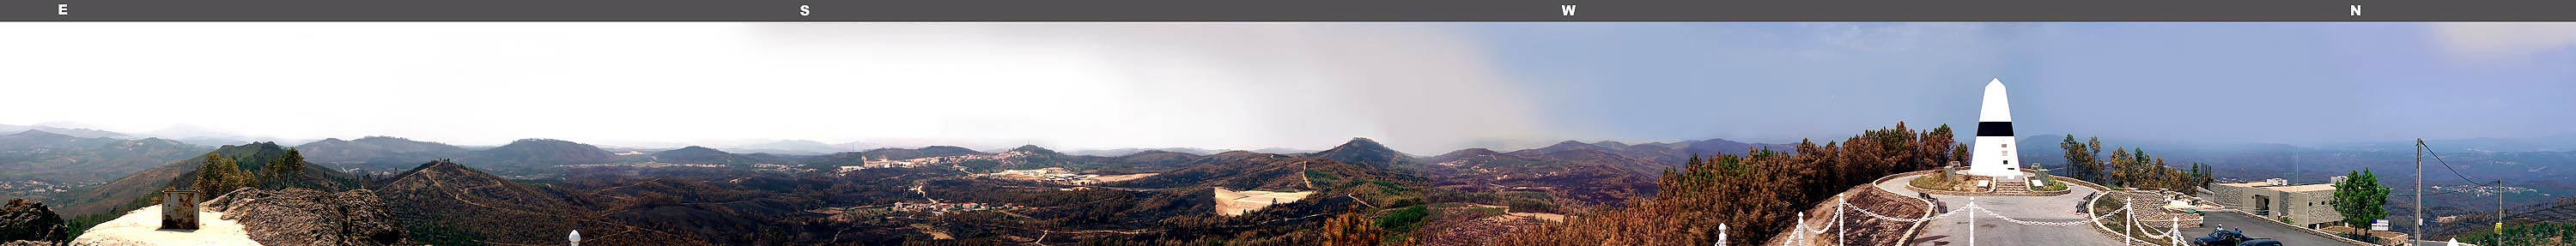 Fire in portuguese forest - 2003